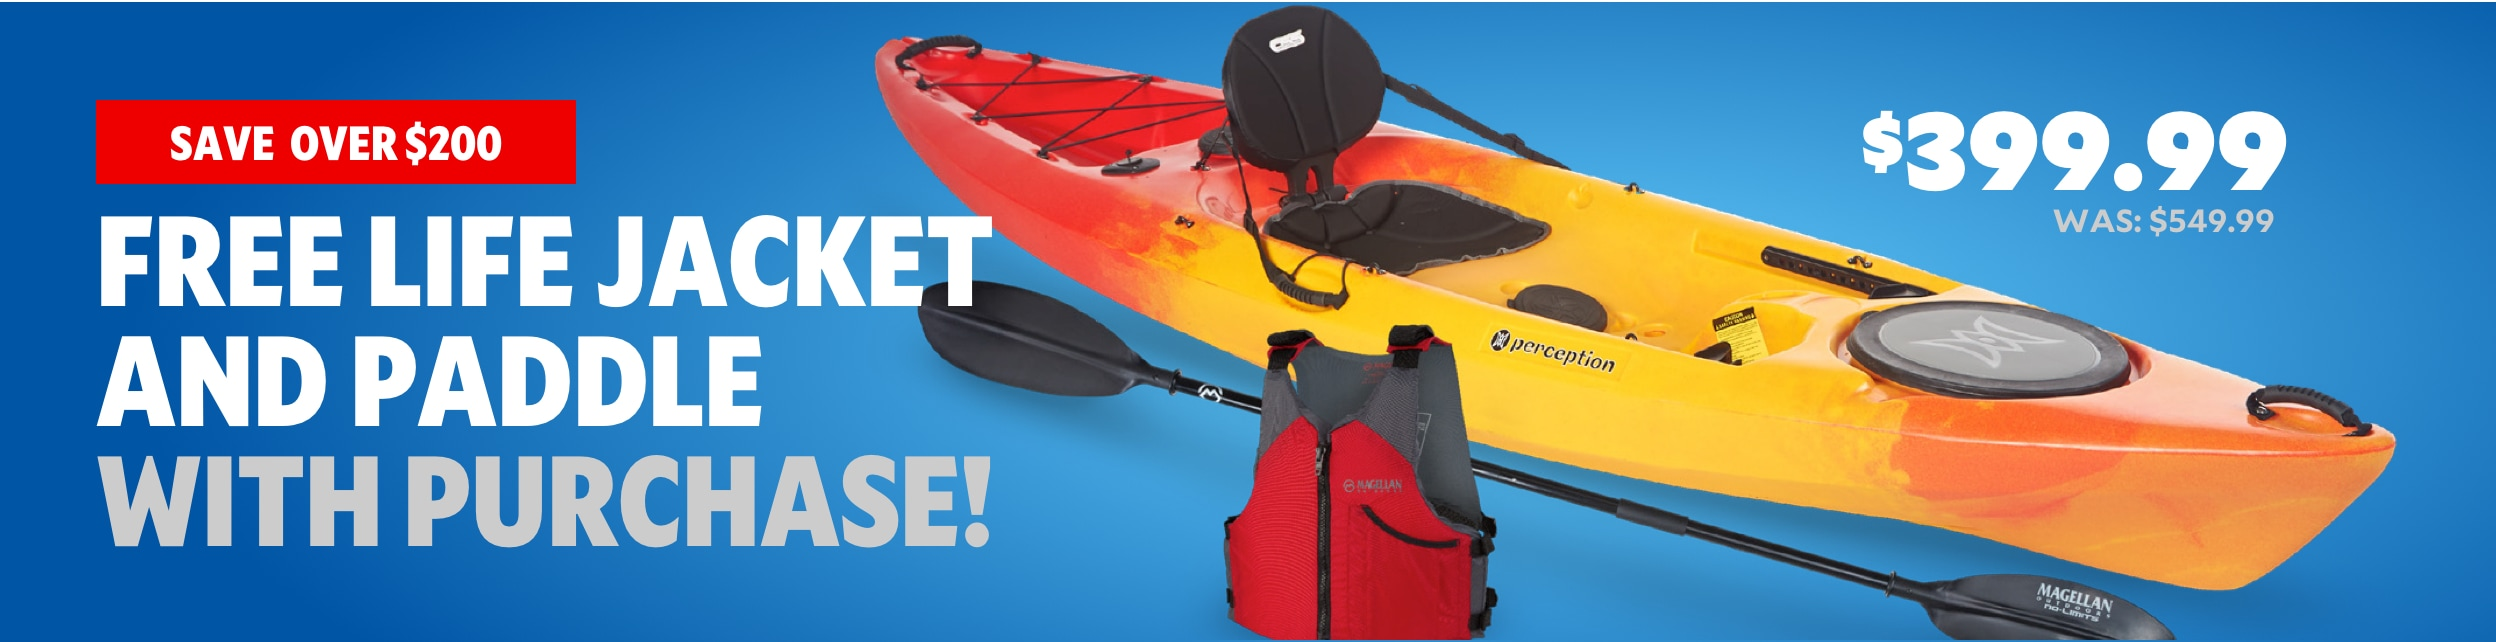 Save over $200, Free Life Jacket And Paddle With Purchase! | Featured kayak $399.99 was $545.99